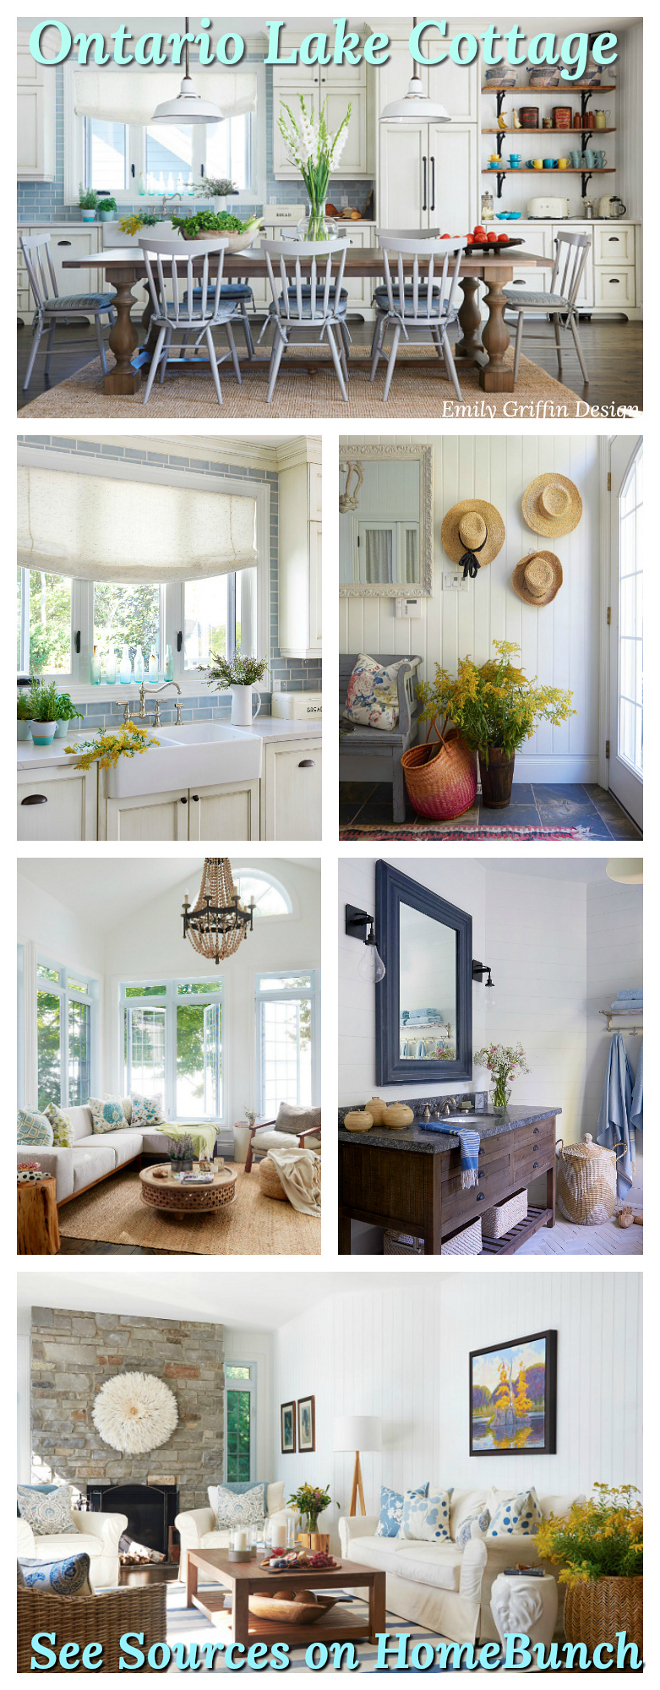 Ontario Lake Cottage Home Decor and Paint Colors